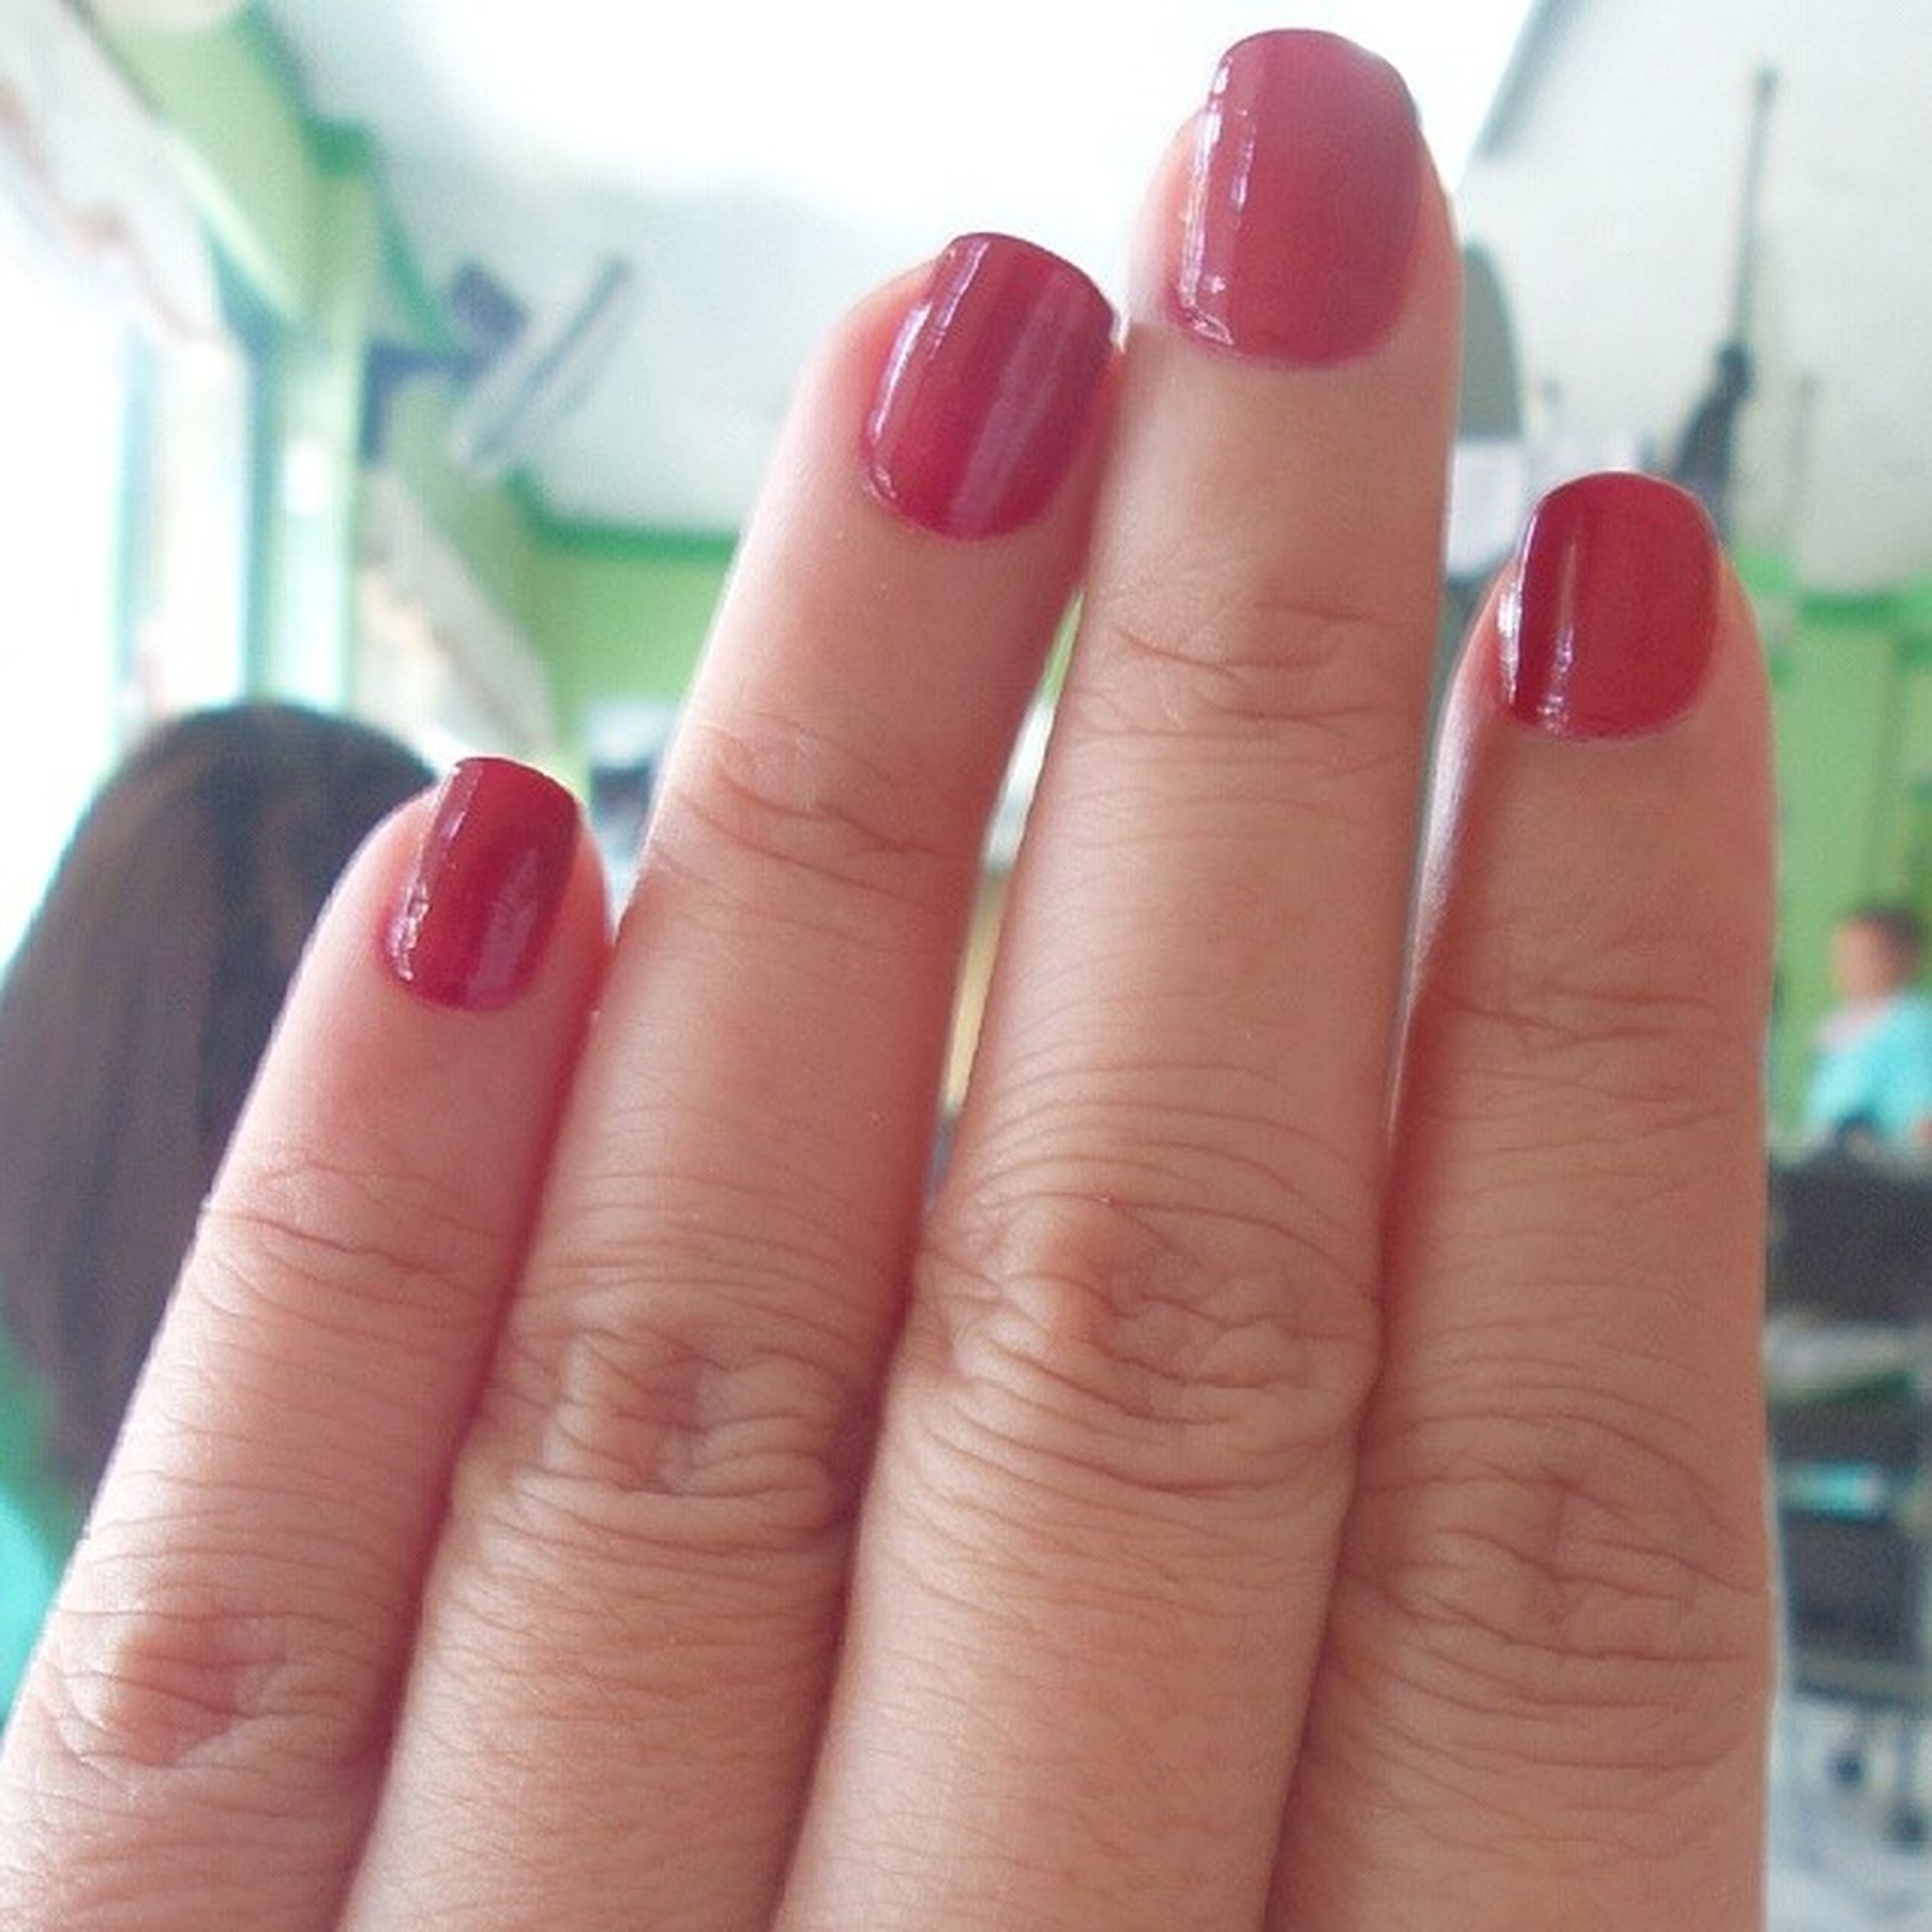 Bloody nails Pamperedgf Red Painted